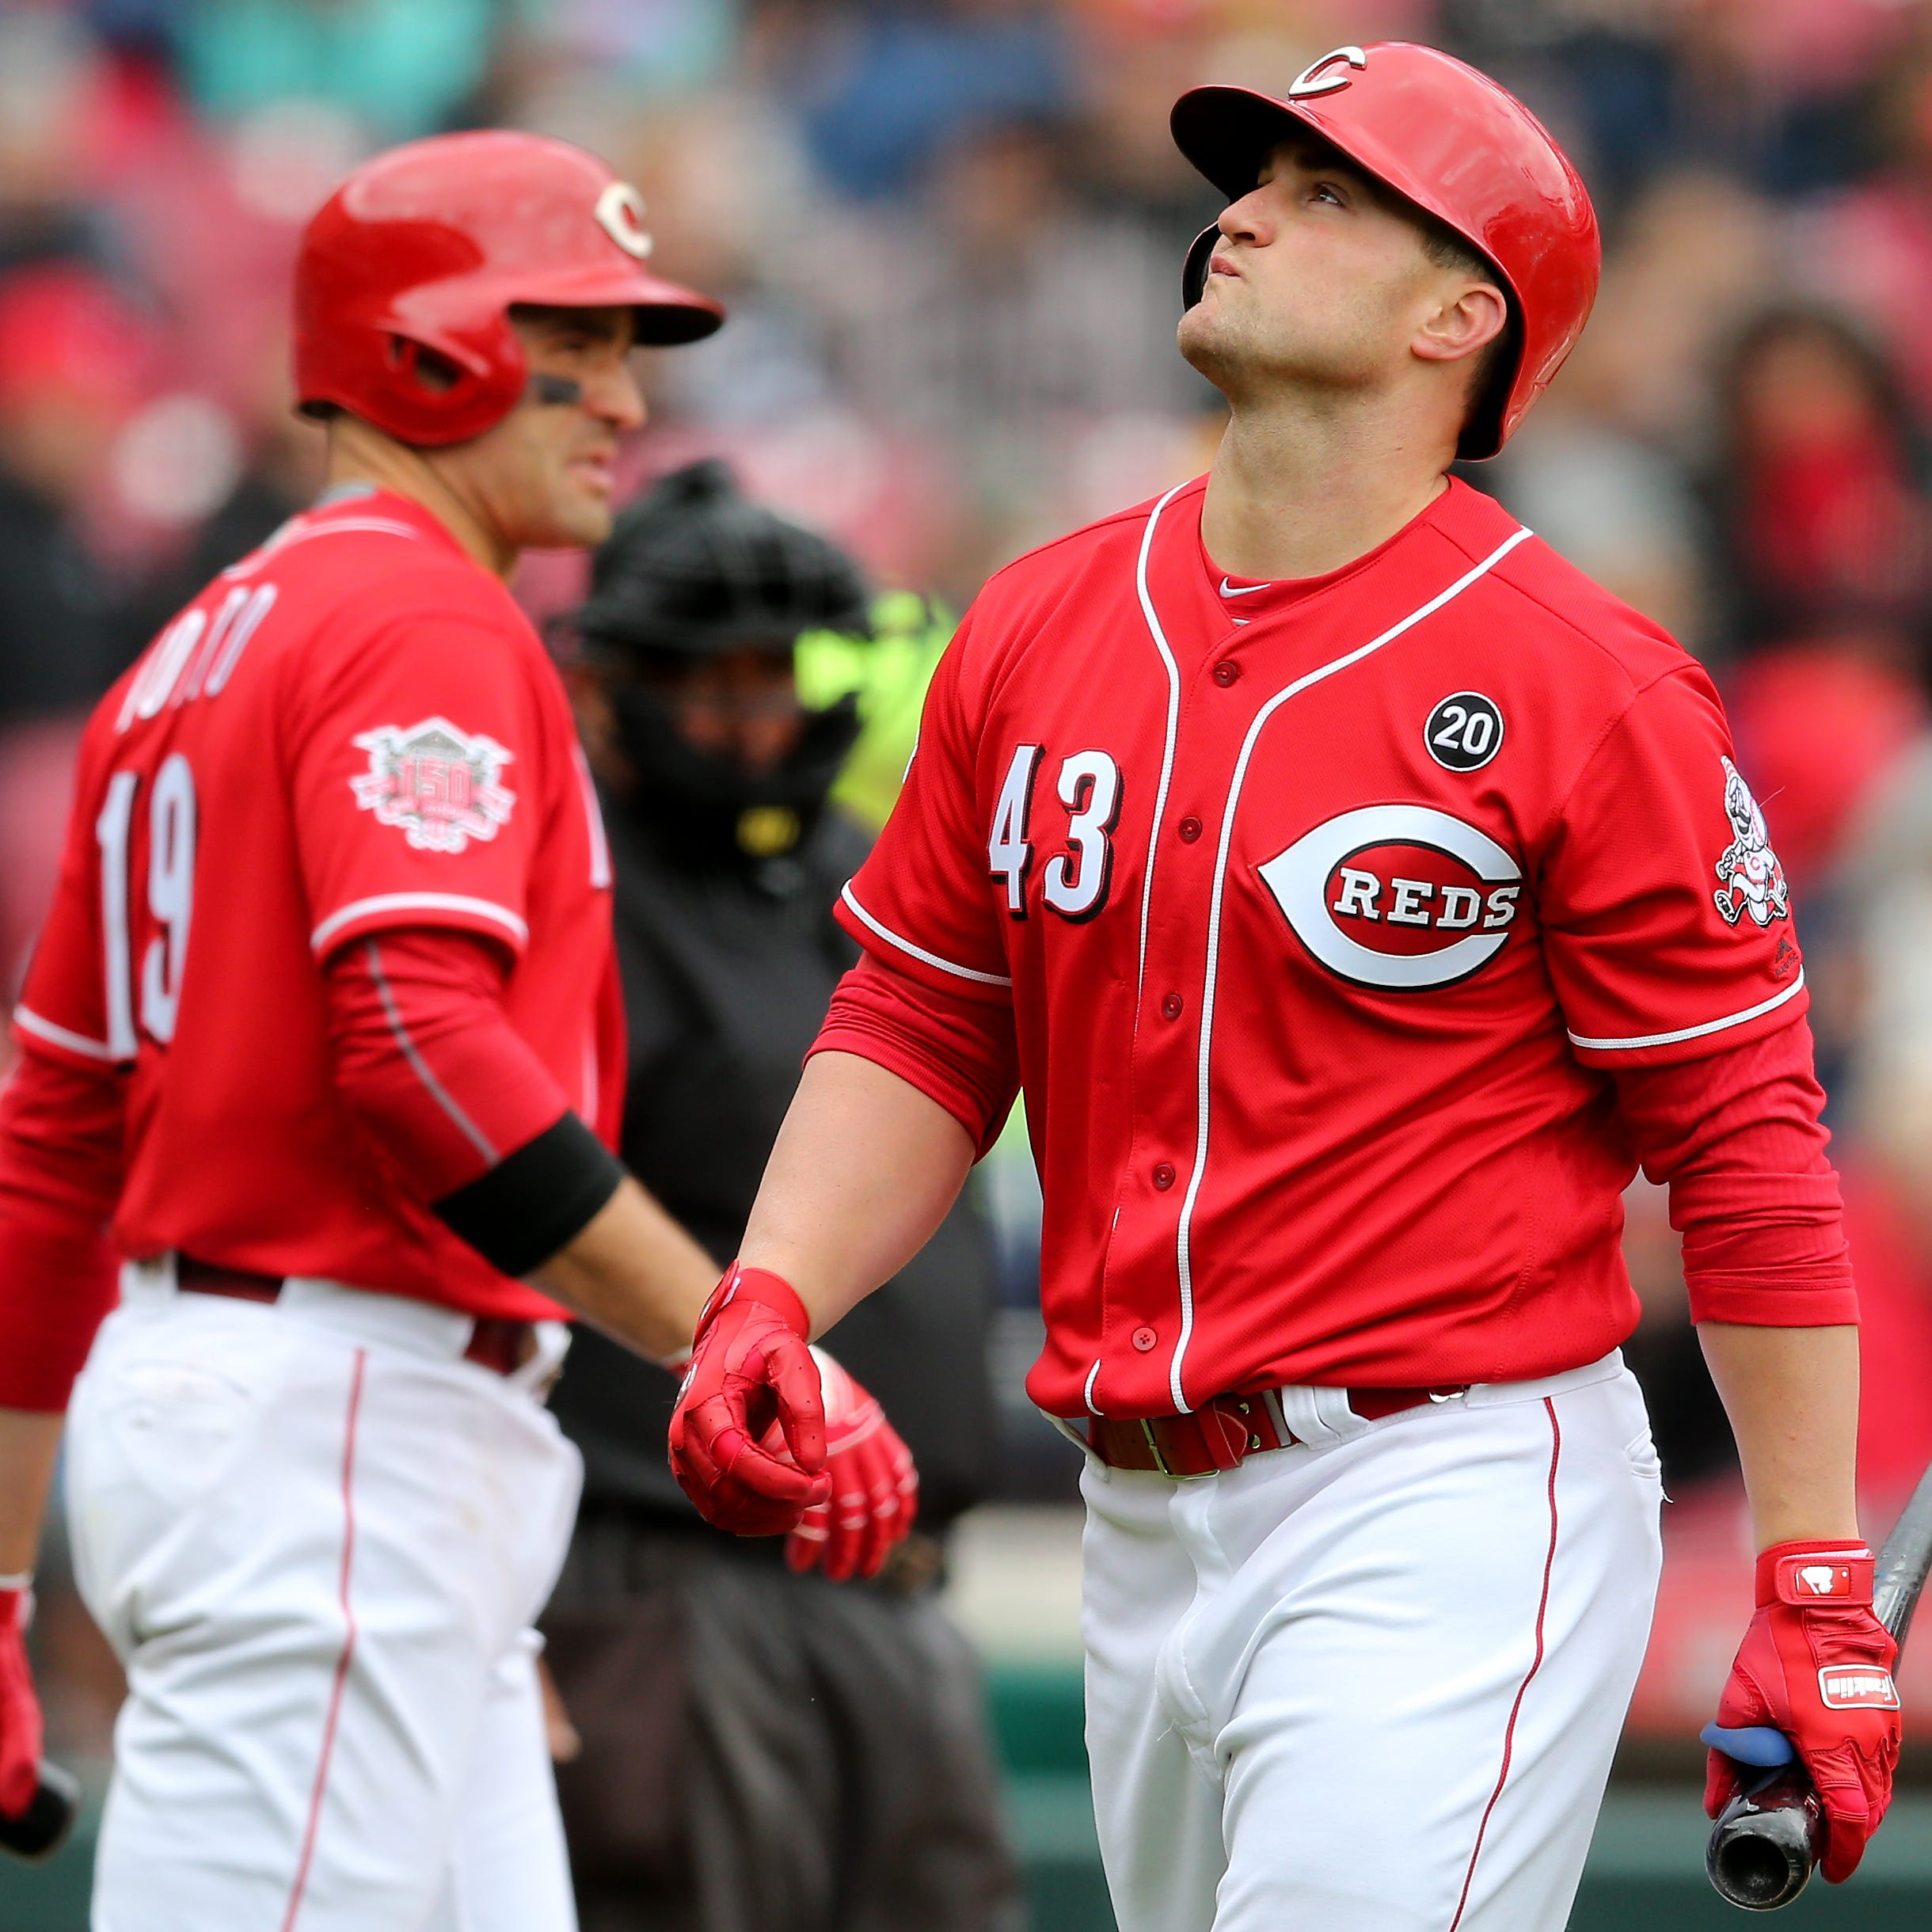 Scott Schebler humbled by rough start to season: 'This game will wear on you mentally'